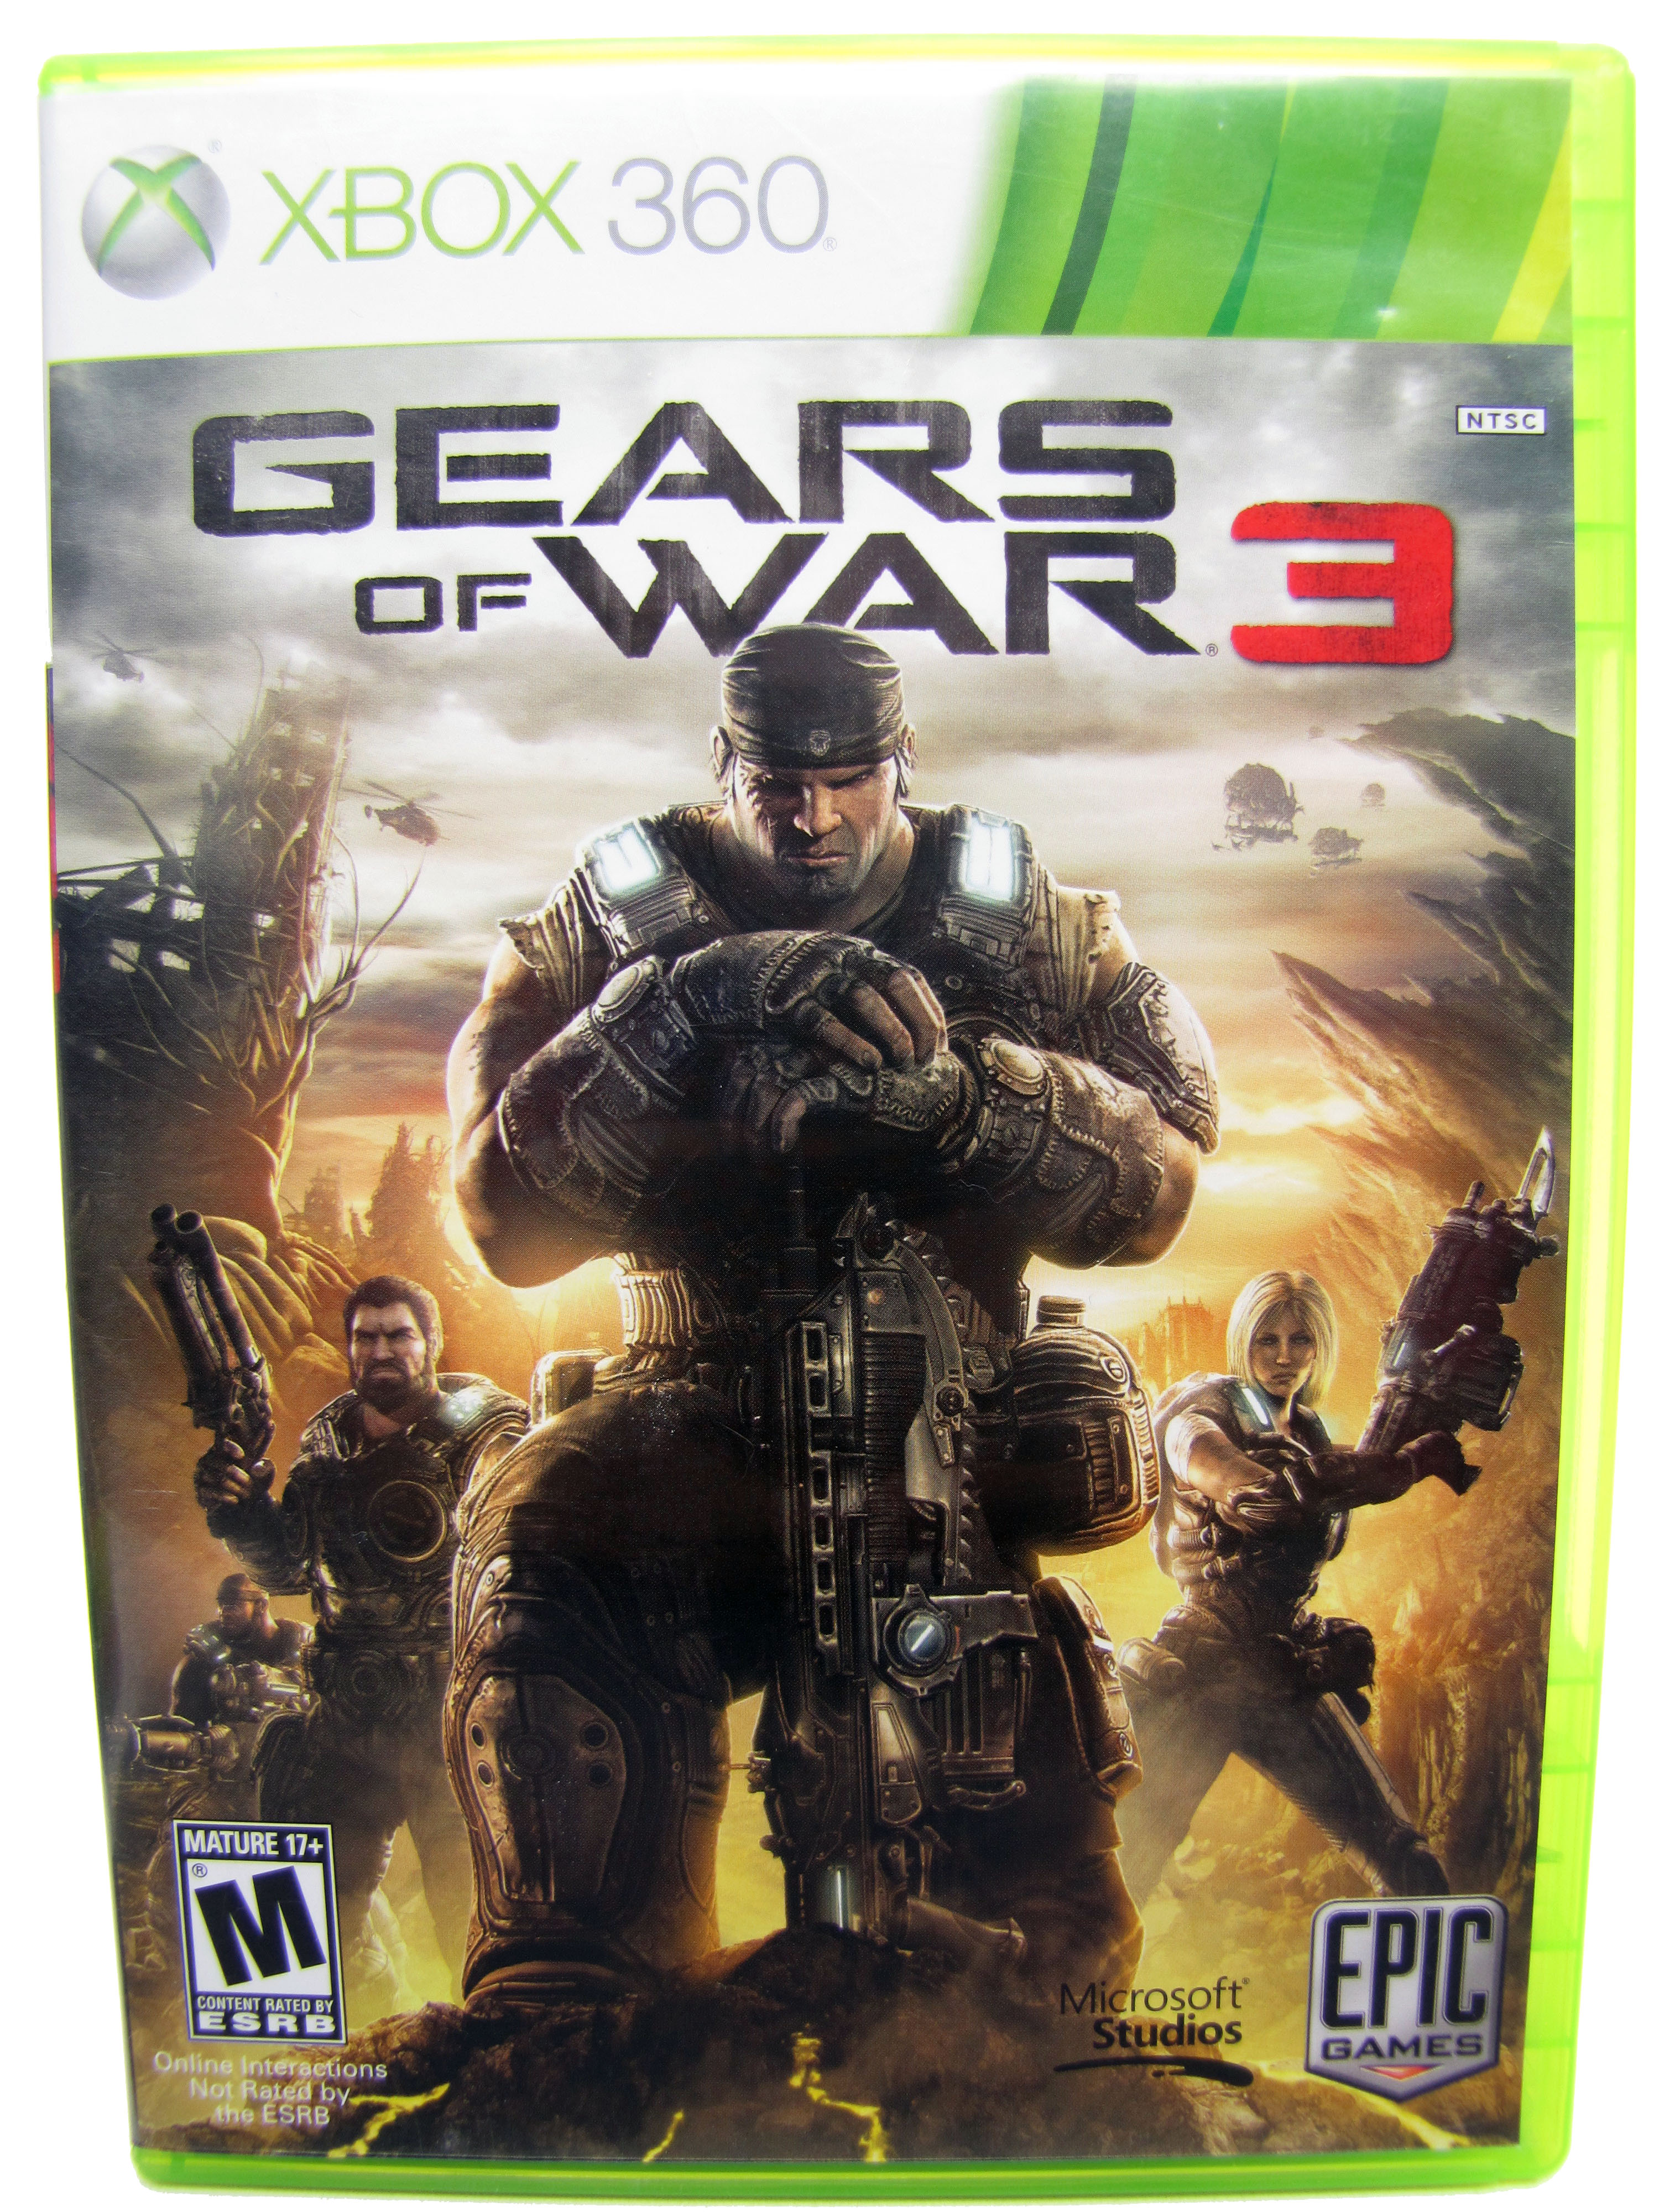 XBOX 360 Gears of War 3 Complete - 2011